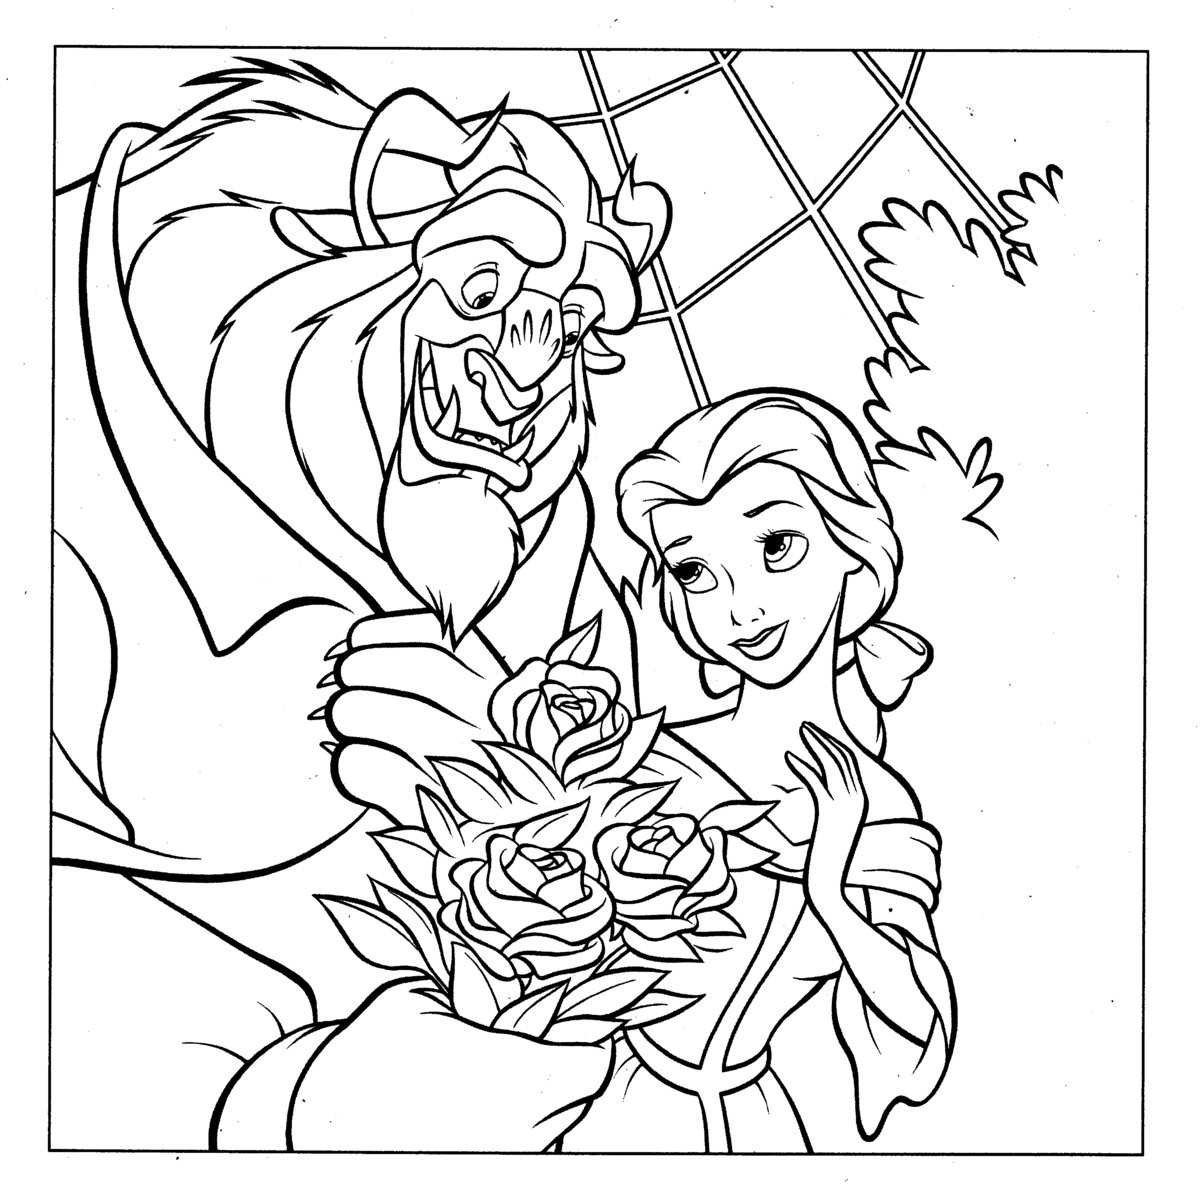 Kids-n-fun 48 coloring pages of Christmas Disney